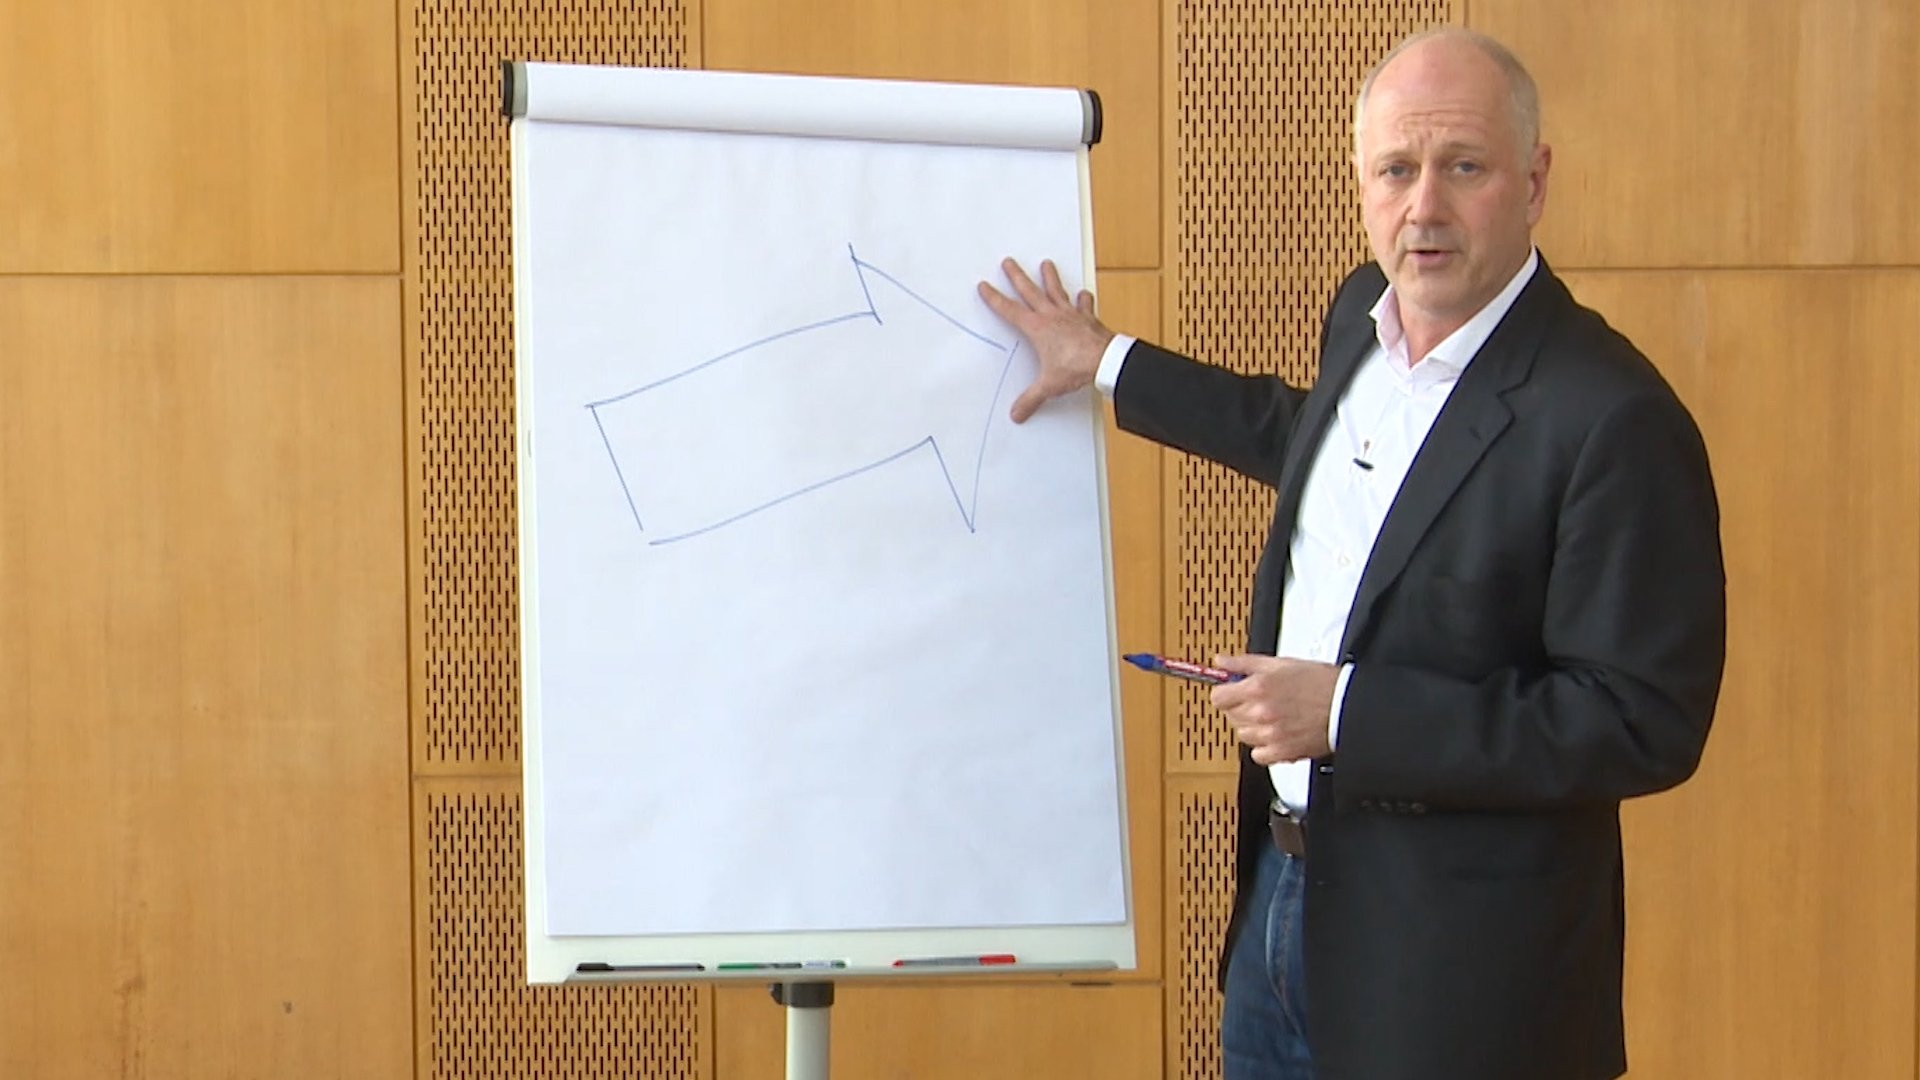 Thumbnail Harald Hungenberg in front of a flipchart